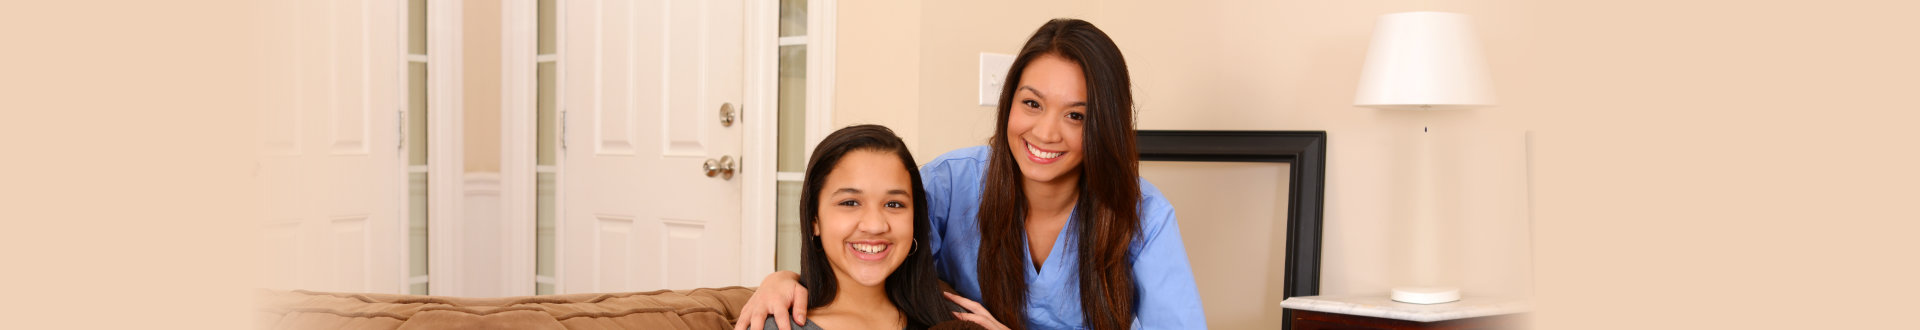 caregiver and teenager